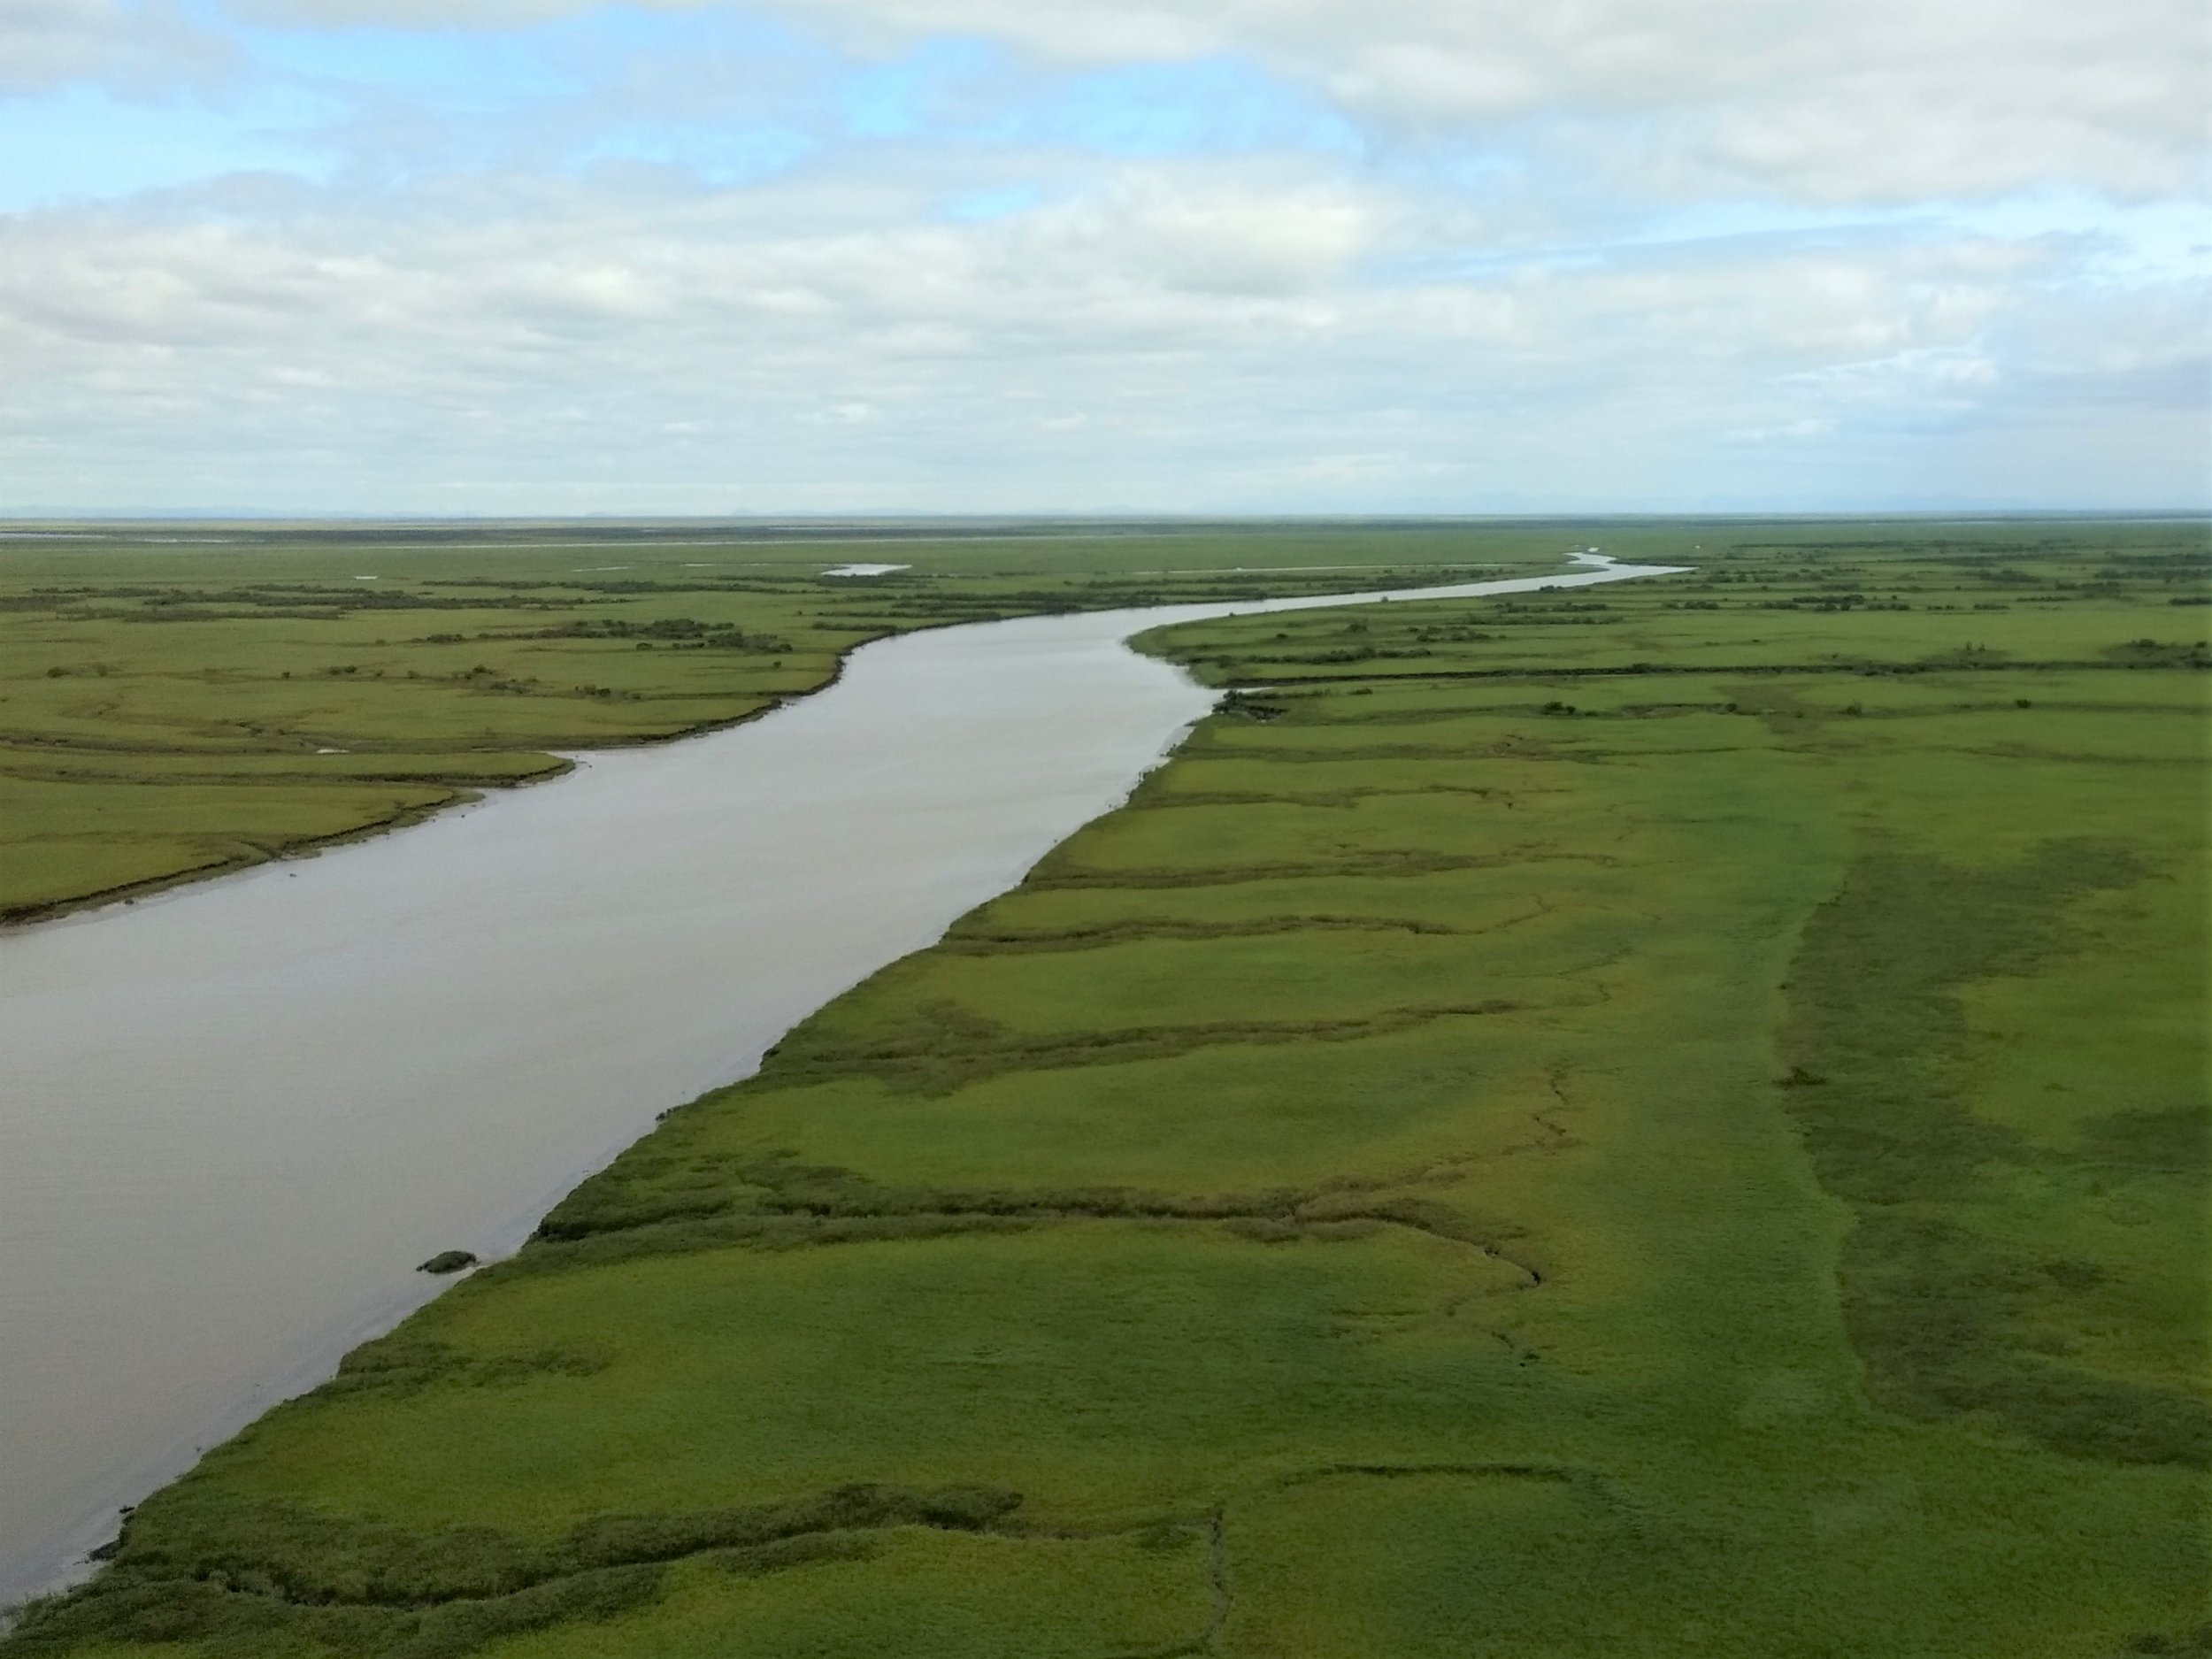 A tidally-influenced channel near the mouth of the Kuskokwim River (notice the rills perpendicular to the channel that form from high tides receding into the channel).  Photo Credit: Andy Robertson